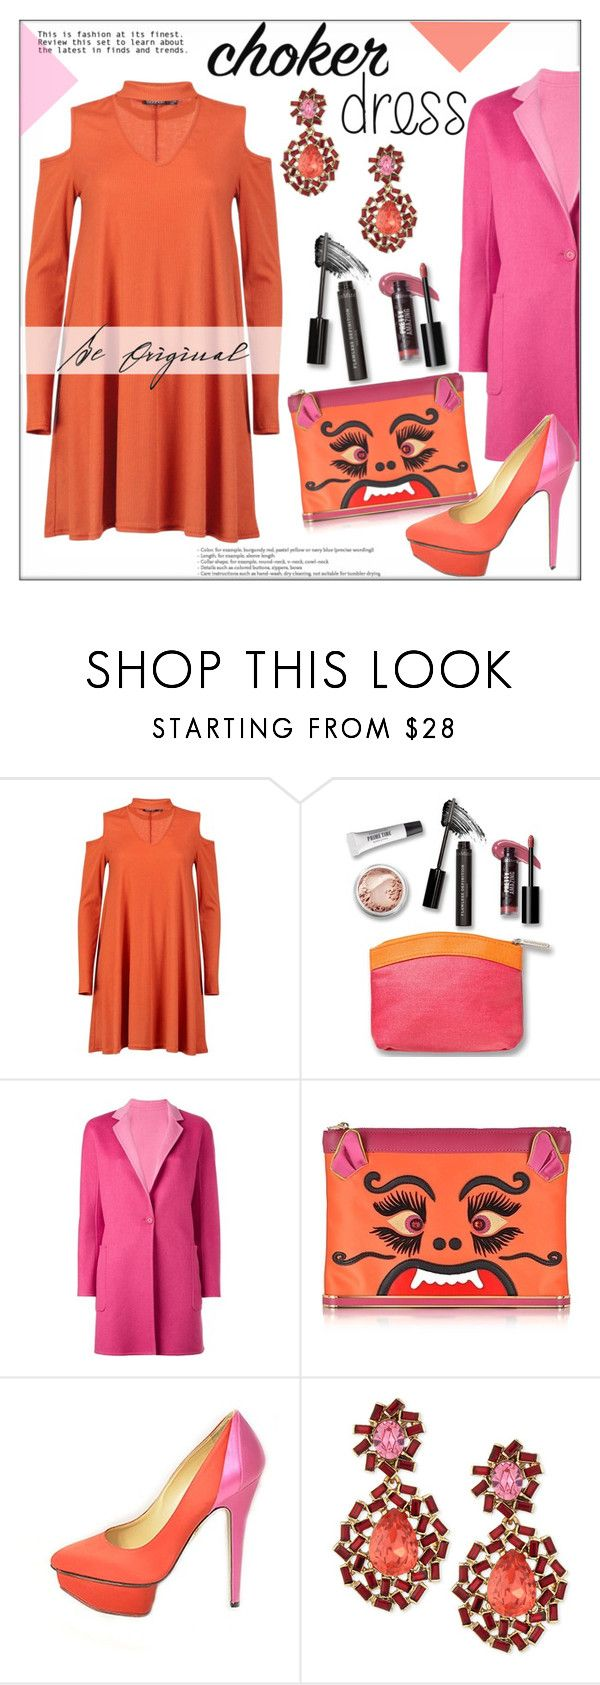 """Choker Dress"" by pat912 ❤ liked on Polyvore featuring Boohoo, Bare Escentuals, MaxMara, Charlotte Olympia, Oscar de la Renta, polyvoreeditorial and chokerdress"